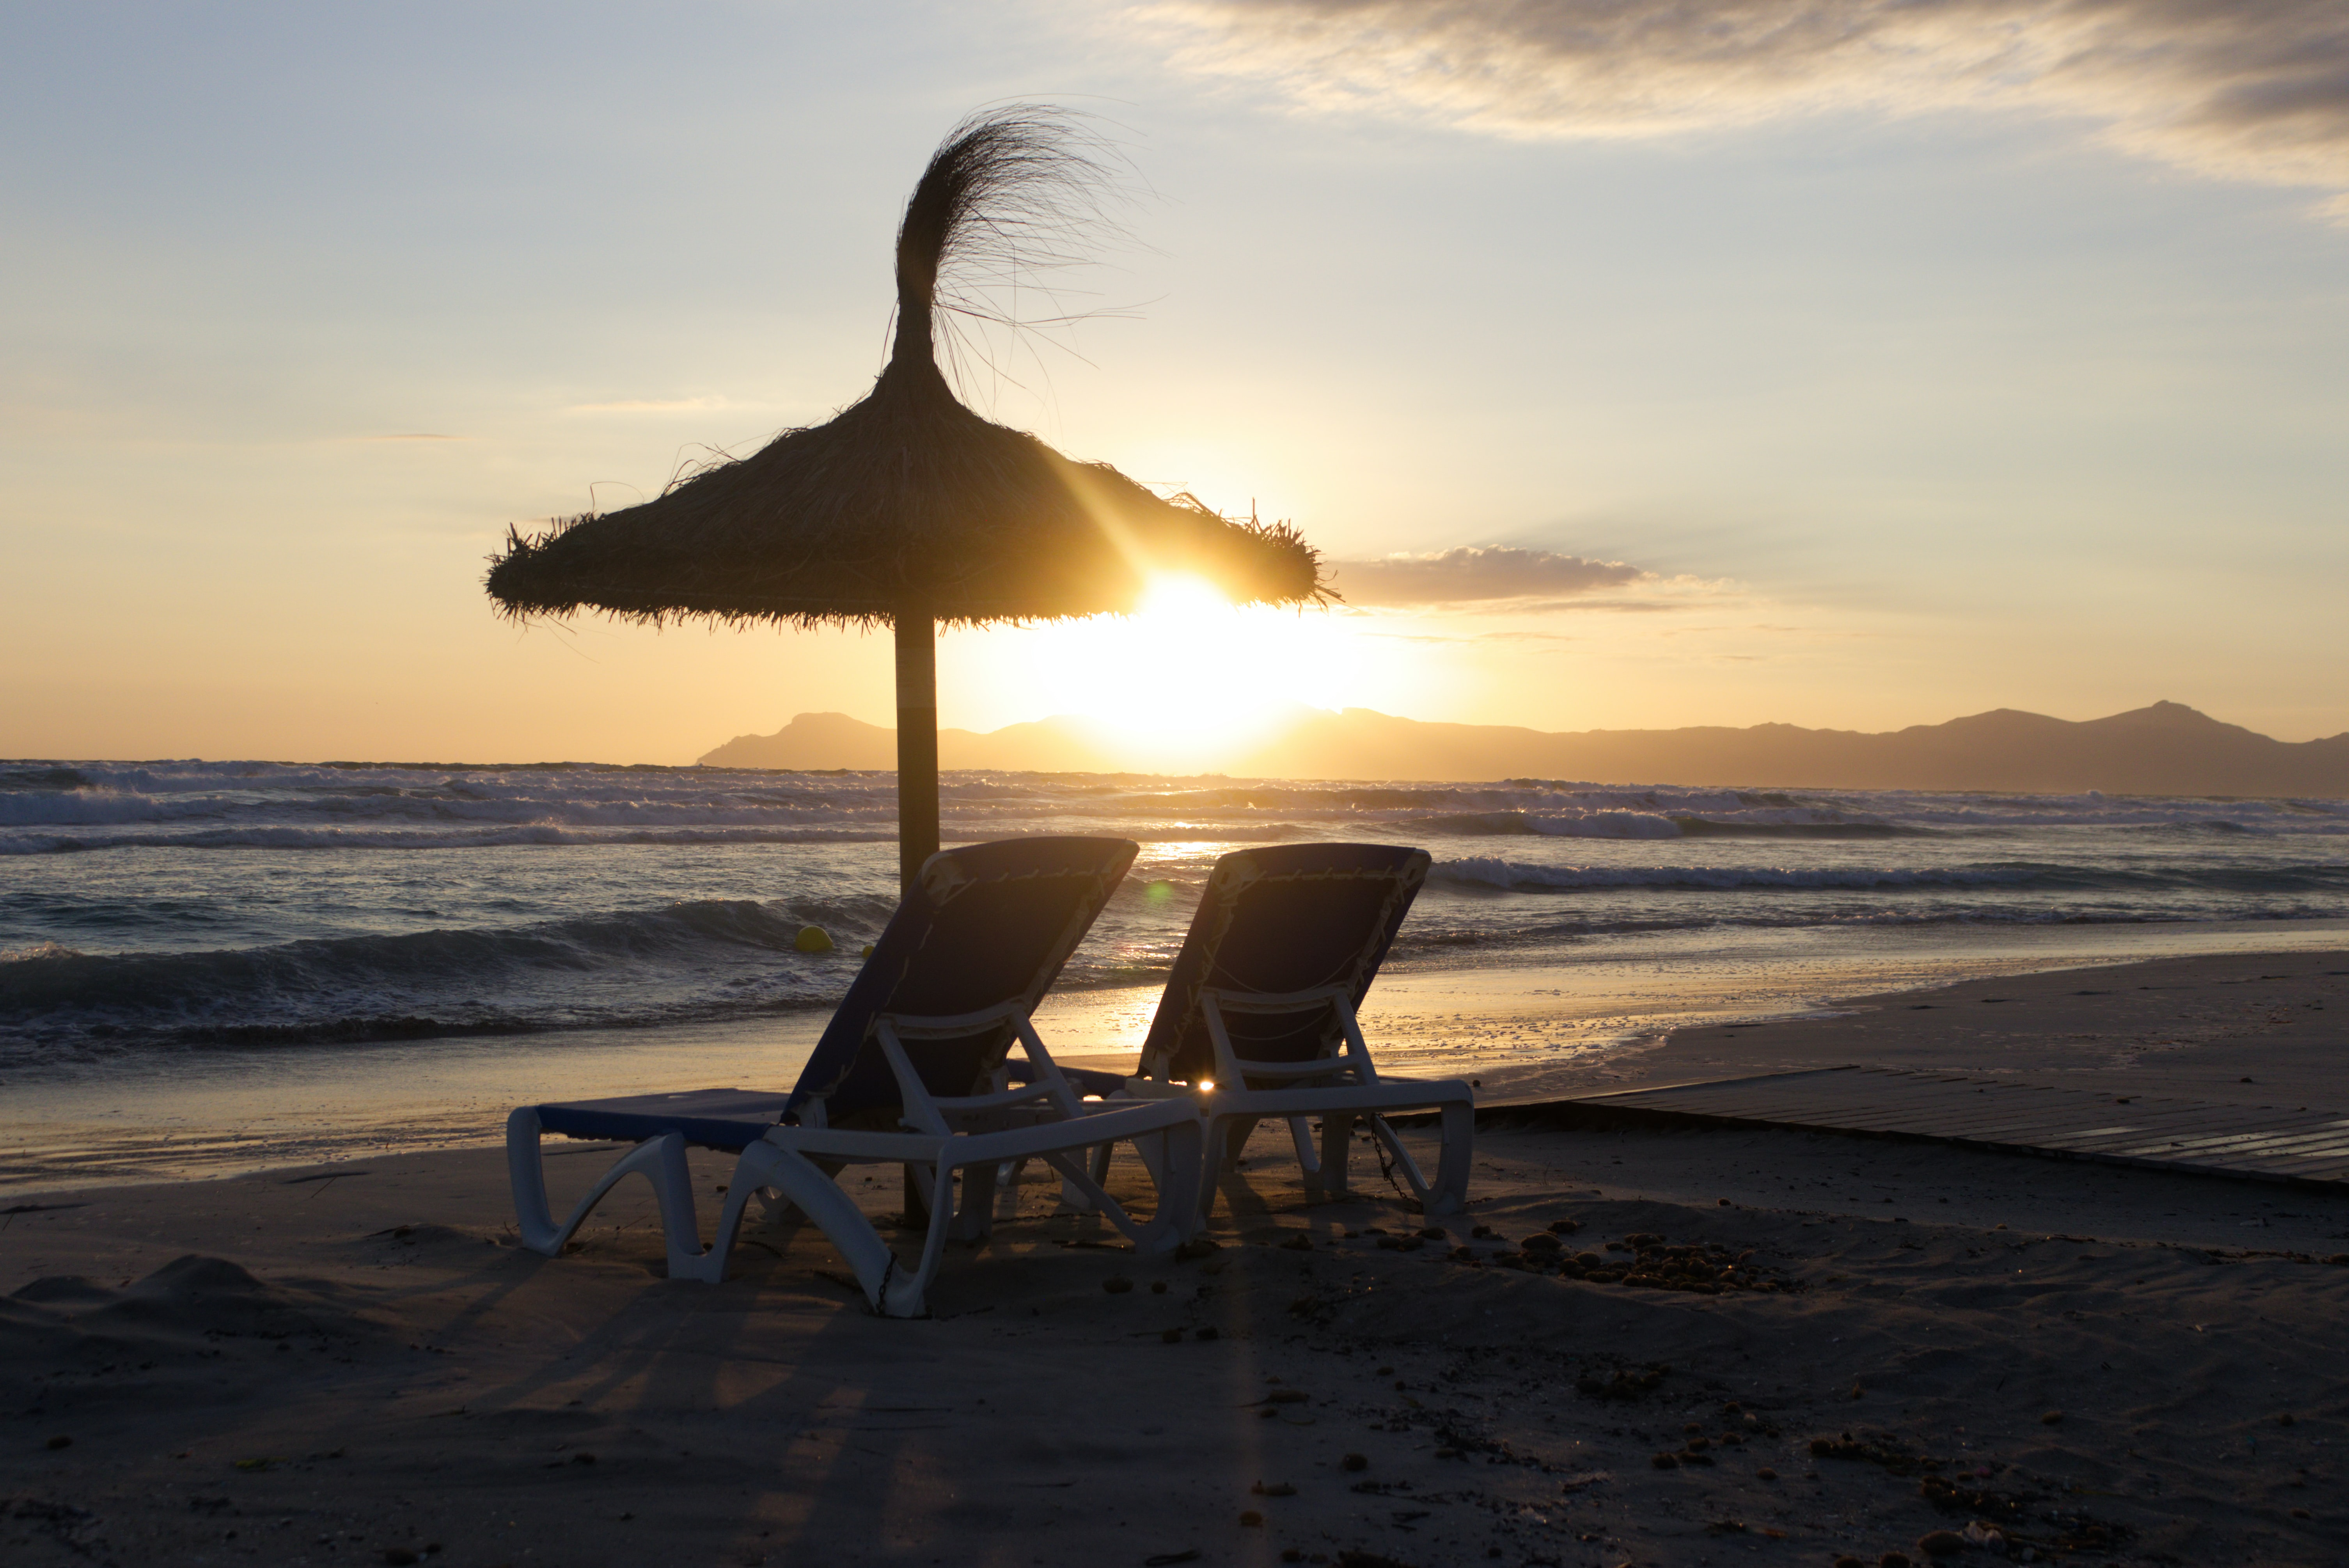 two brown chairs and umbrella on shore during golden hour